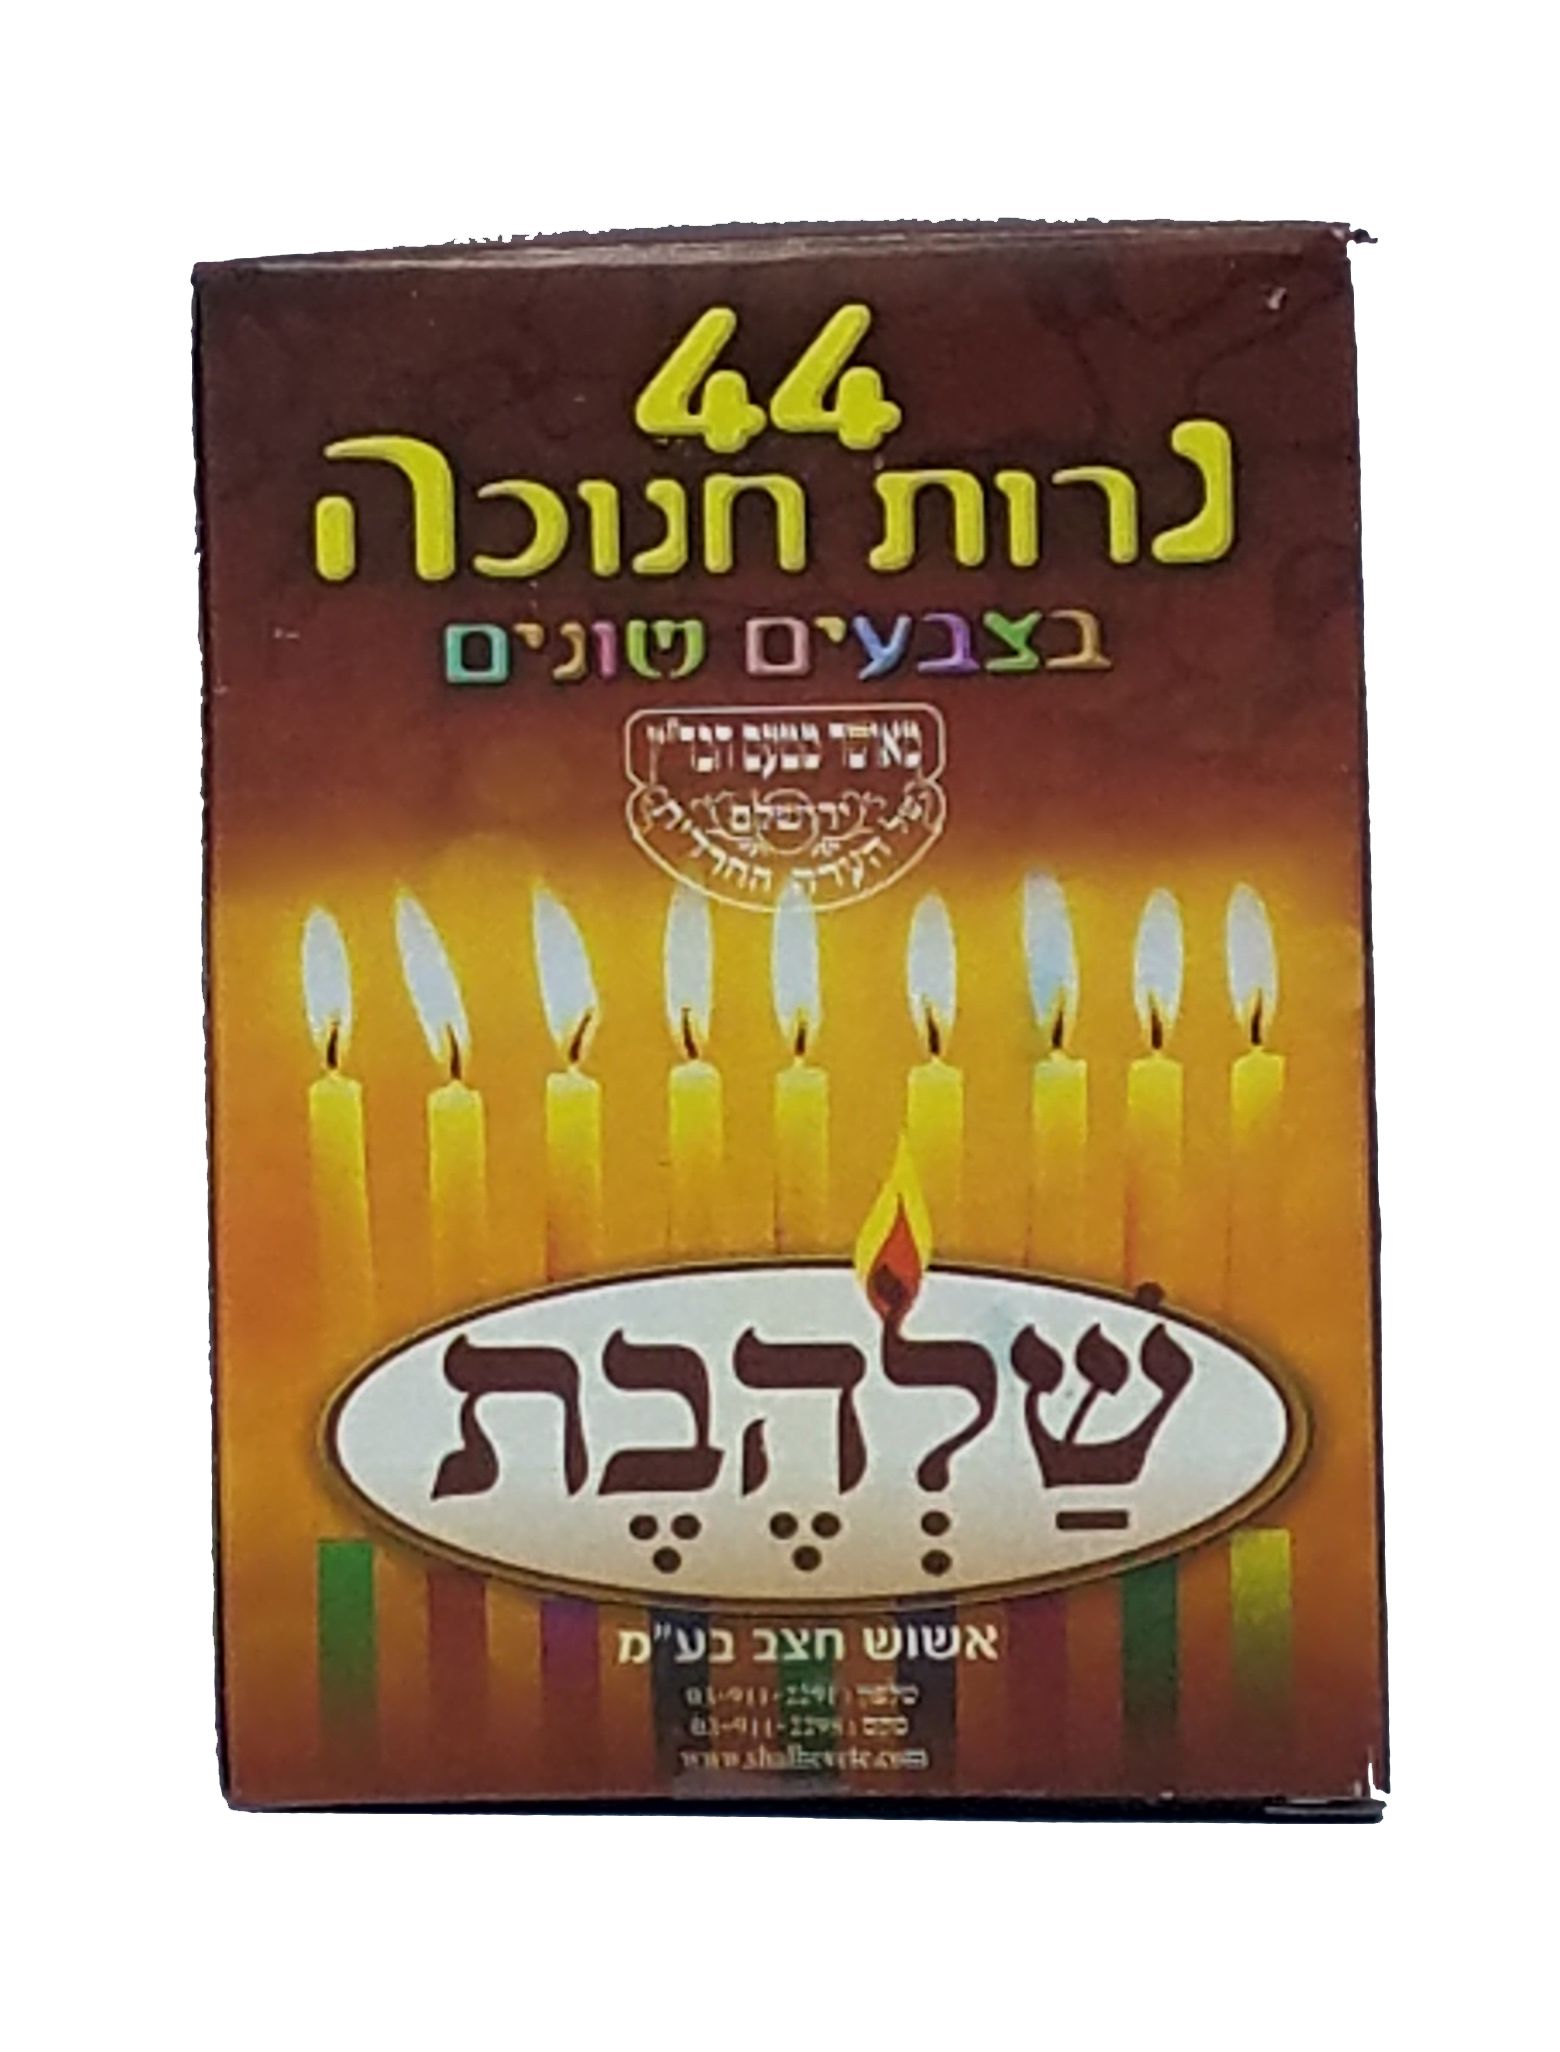 Box of 44 Made in Israel Chanukah Candles